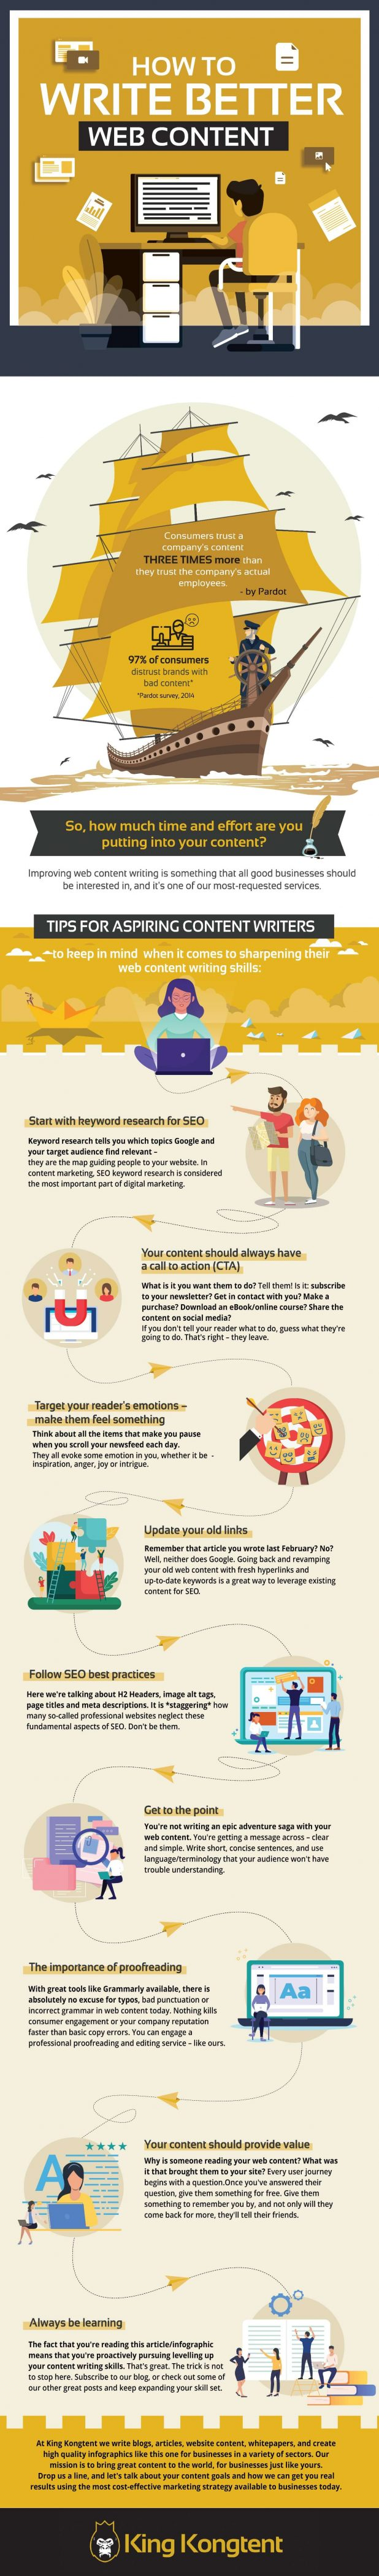 Guide: Tips on How to Write Effective Web Content [Infographic]